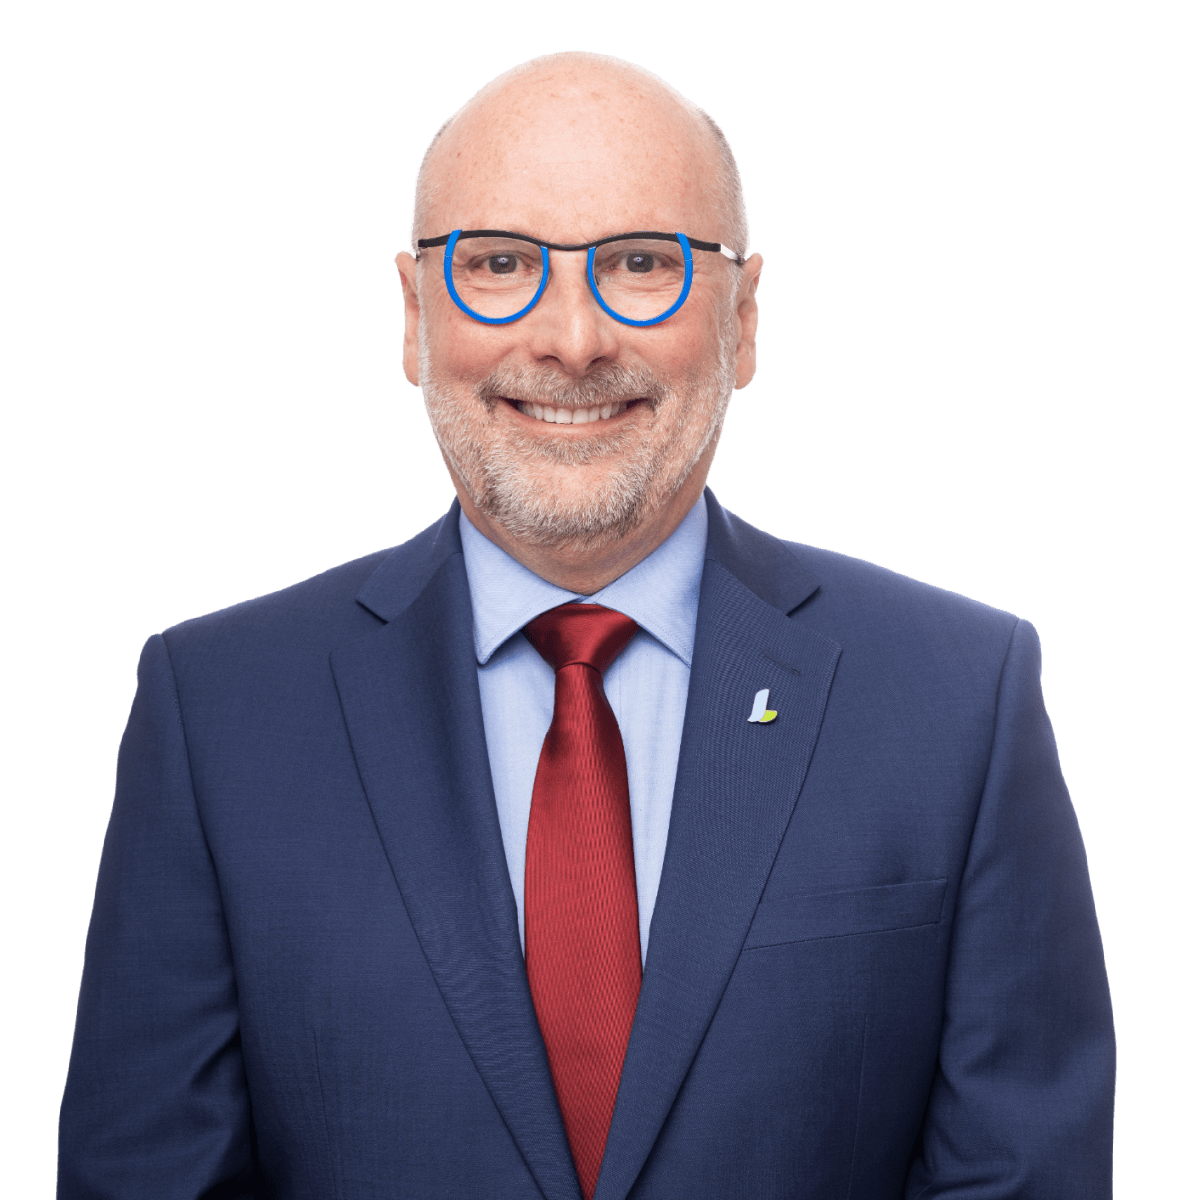 Nos candidats MichelTrottier